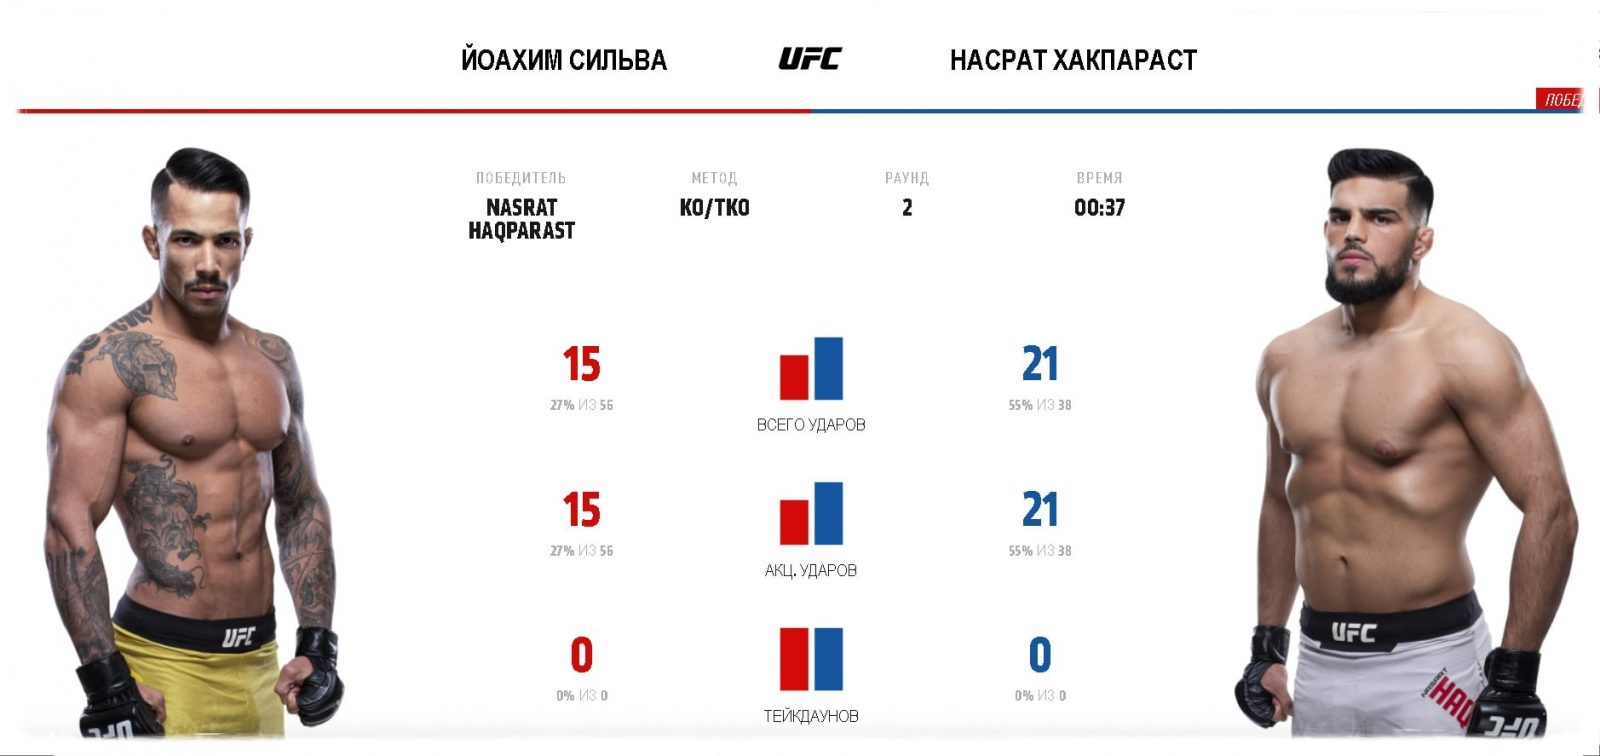 nasrat-hakparast-joahim-silva-video-boya-ufc-fight-night-covington-vs-lawler_1